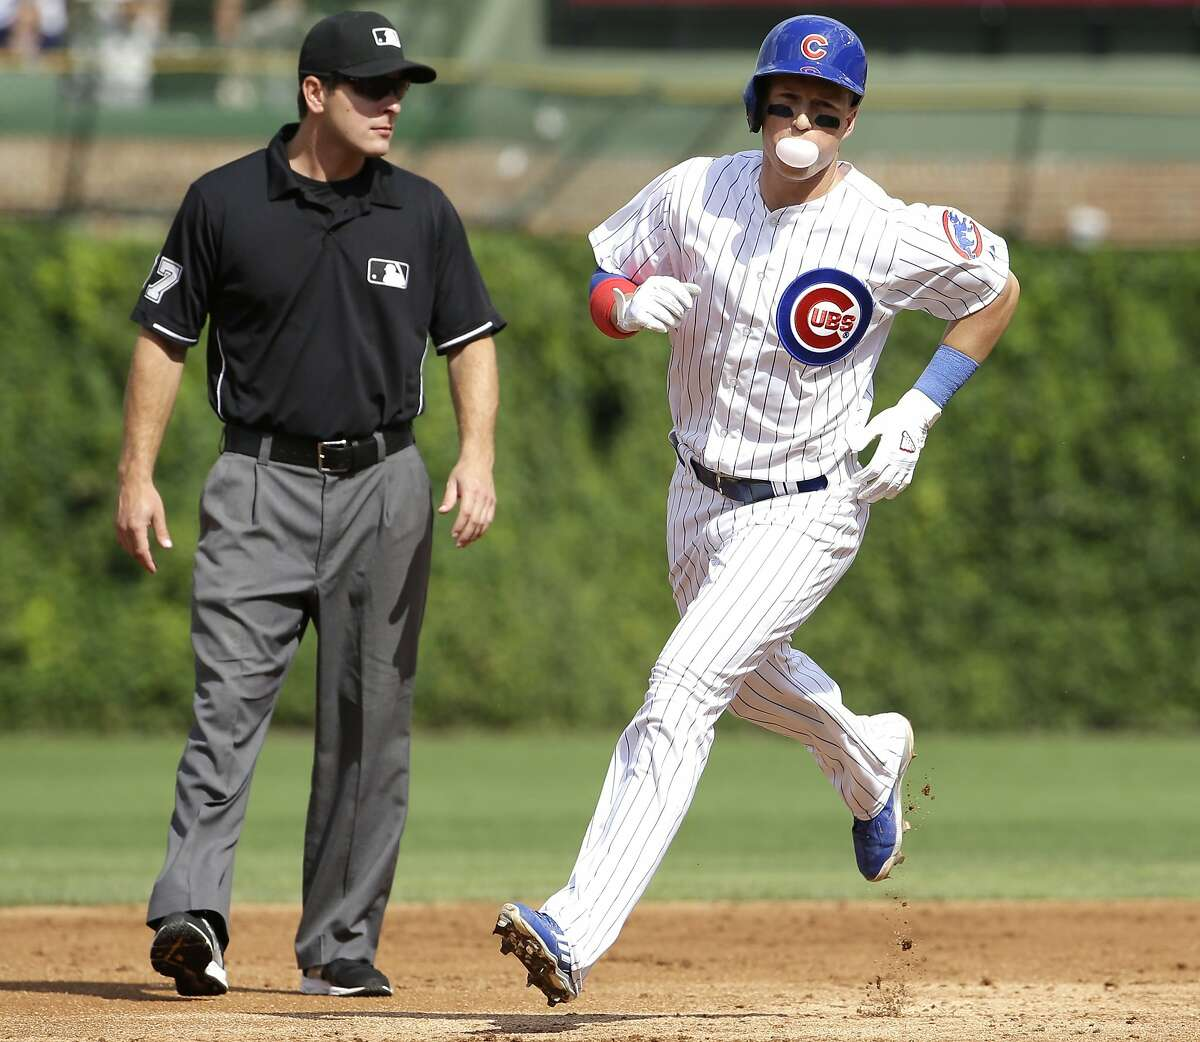 Chicago Cubs' Chris Coghlan rounds the bases after hitting a solo home run during the first inning of a baseball game against the Atlanta Braves Friday, Aug. 21, 2015, in Chicago. (AP Photo/Nam Y. Huh)